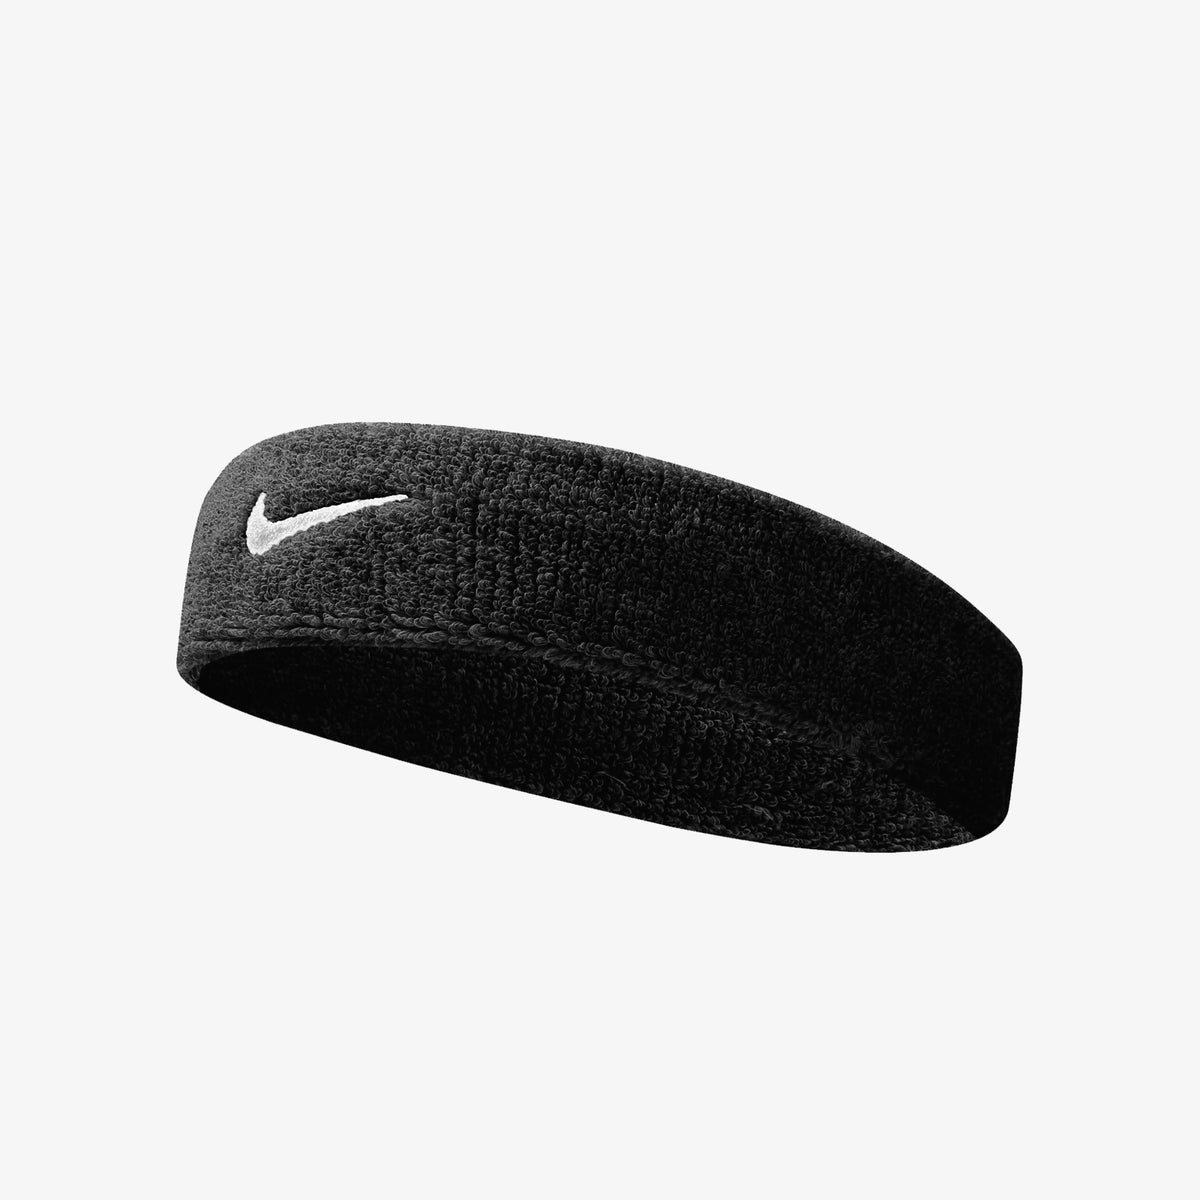 Nike Swoosh Headband - Black/White